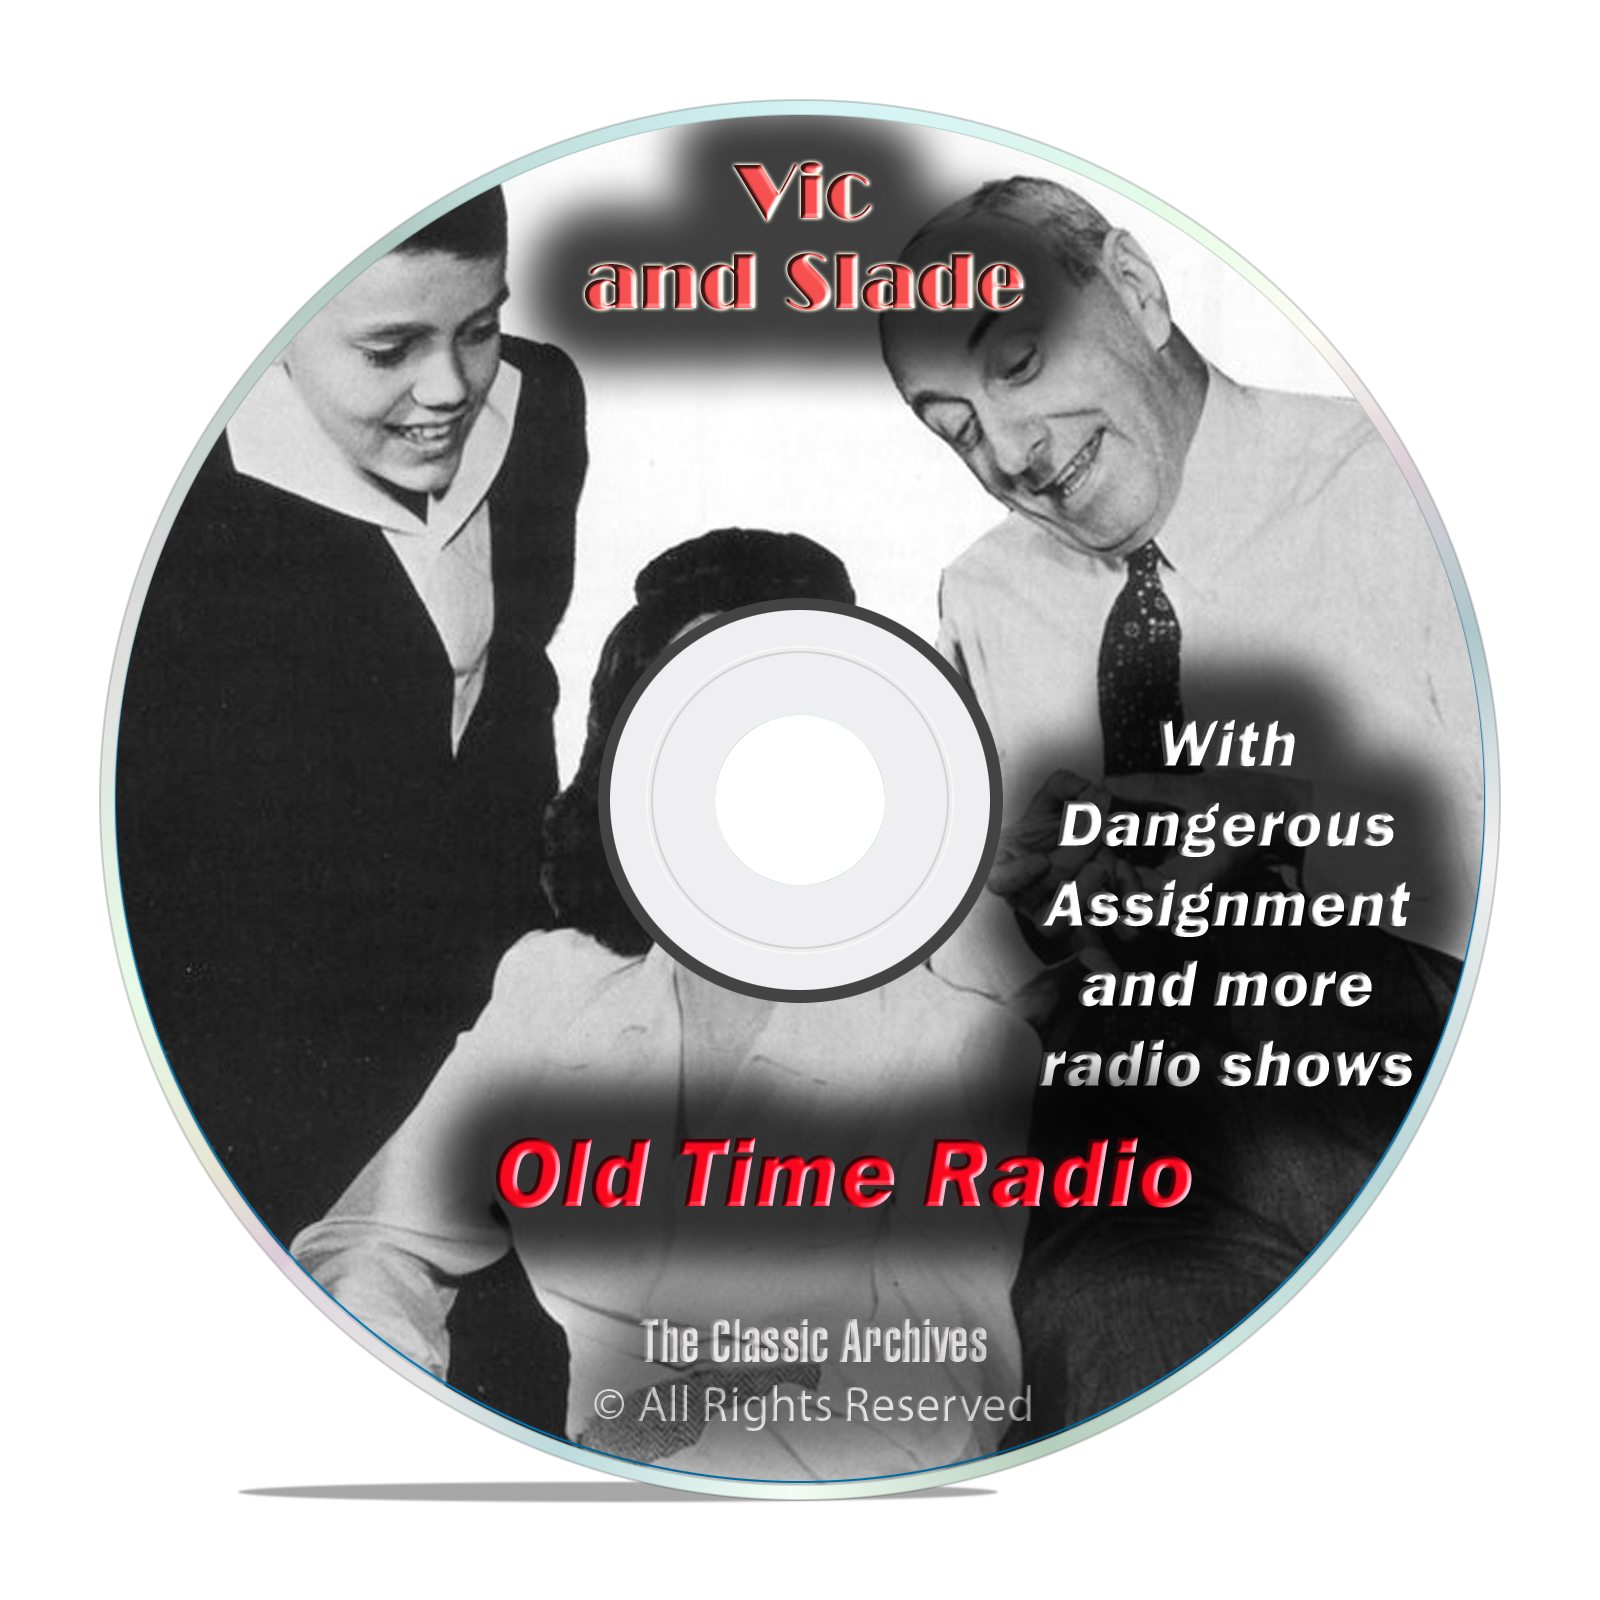 Vic and Slade, 942 Classic Old Time Radio Shows Soap Drama OTR mp3 DVD